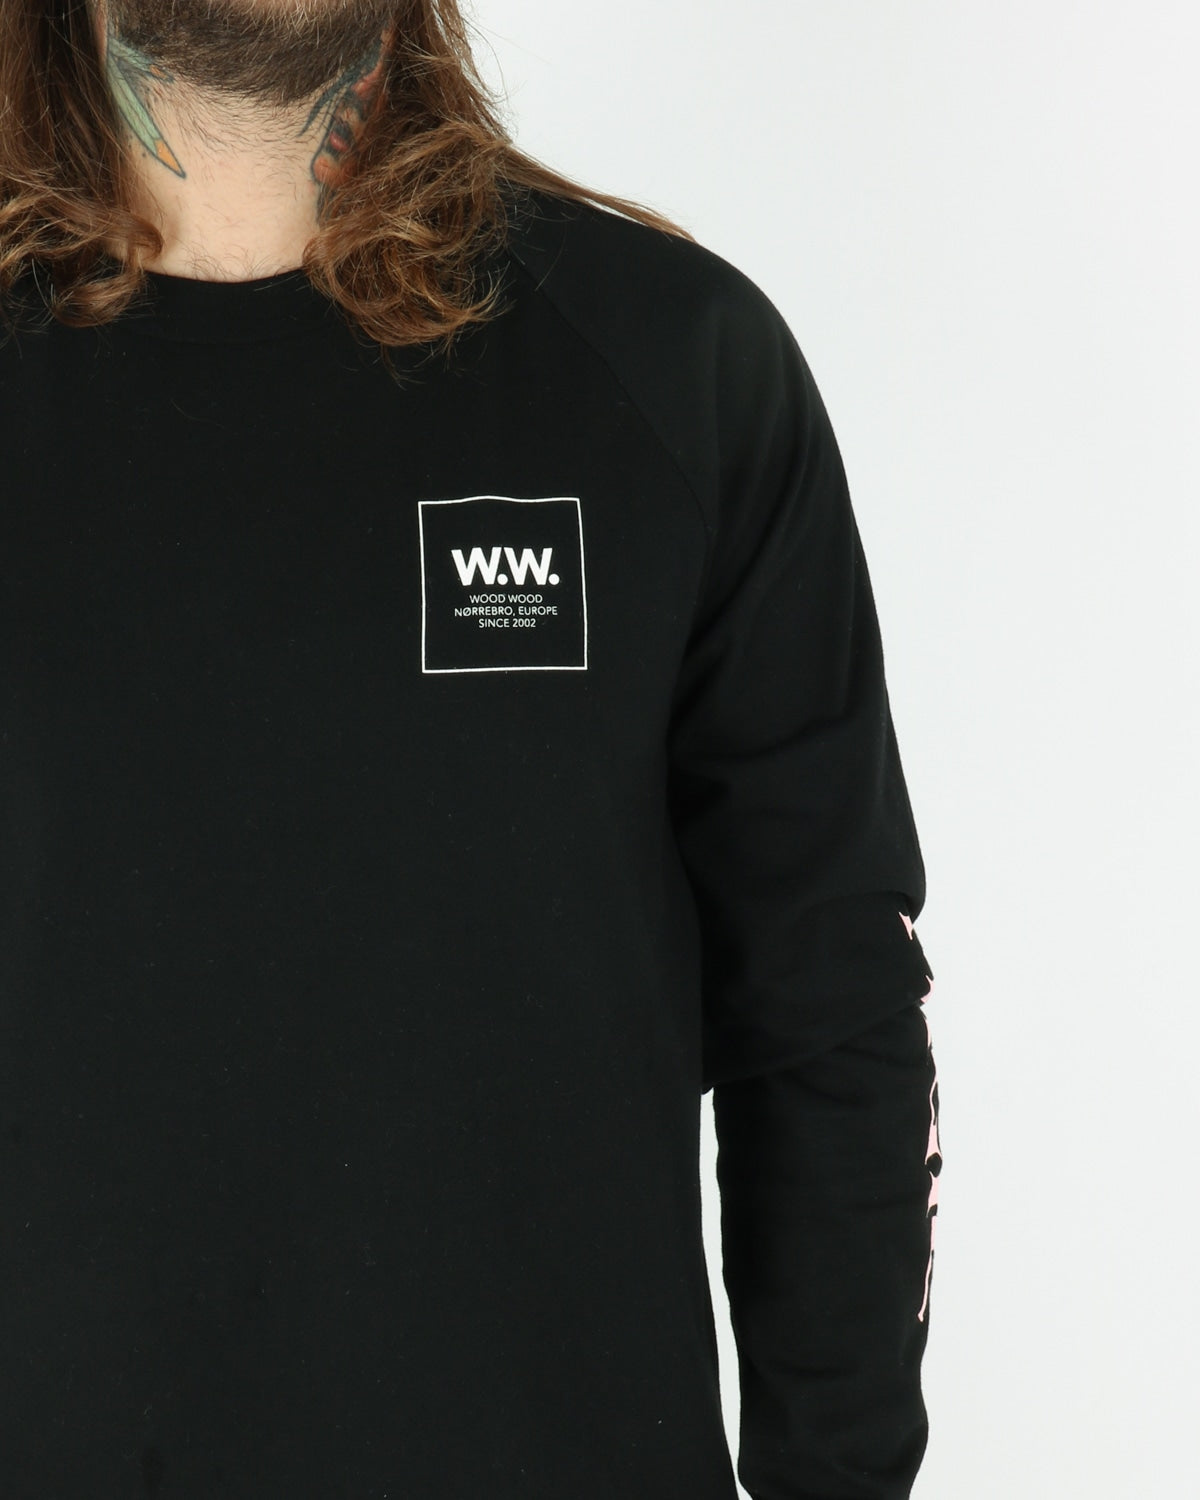 wood wood_han longsleeve_black_view_3_4